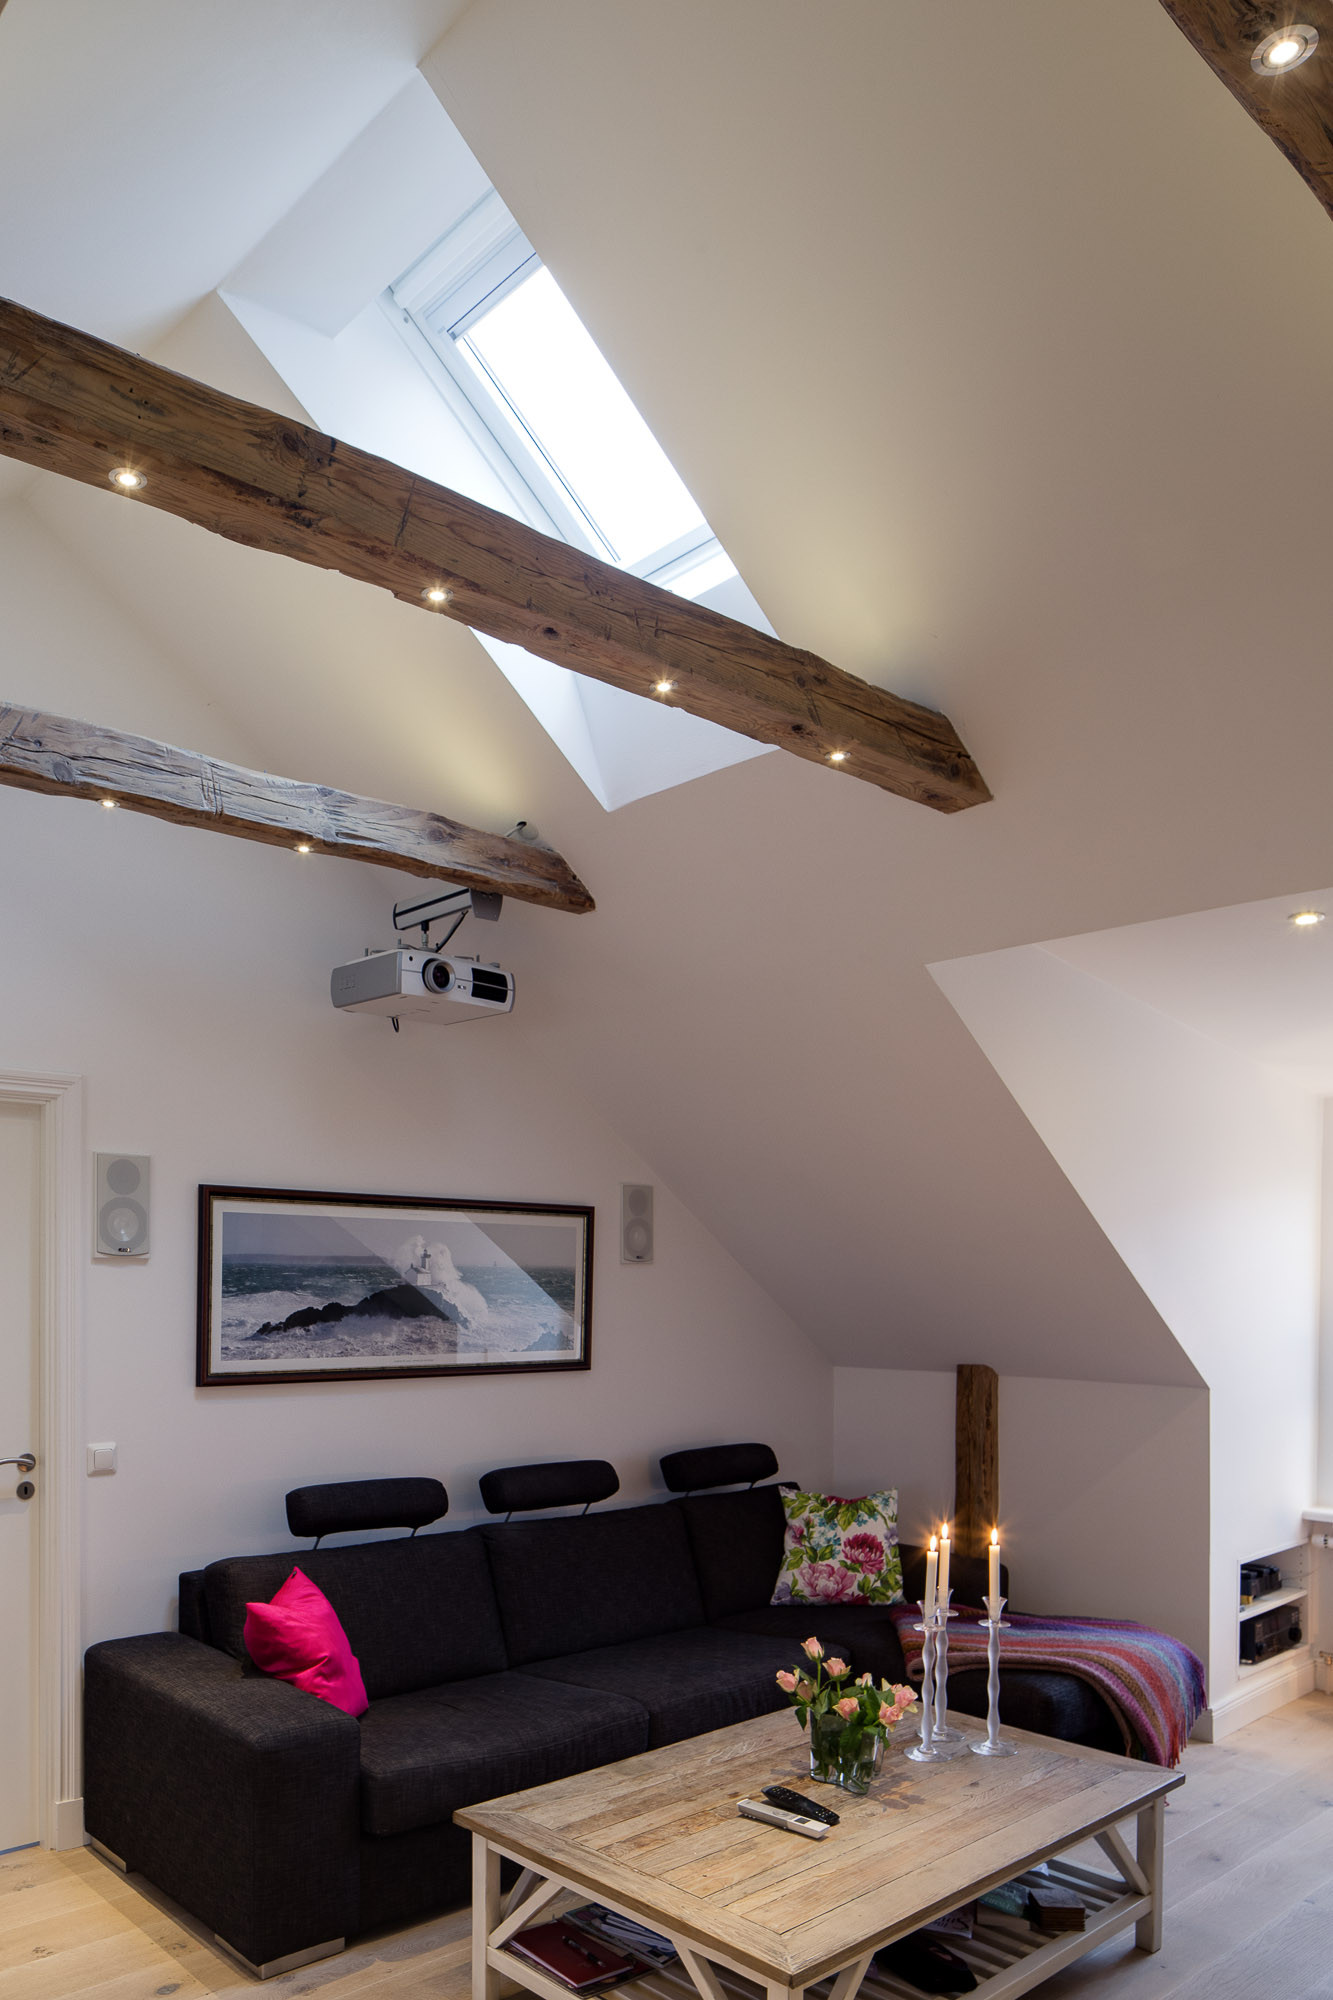 Wood Beams with Modern Lights